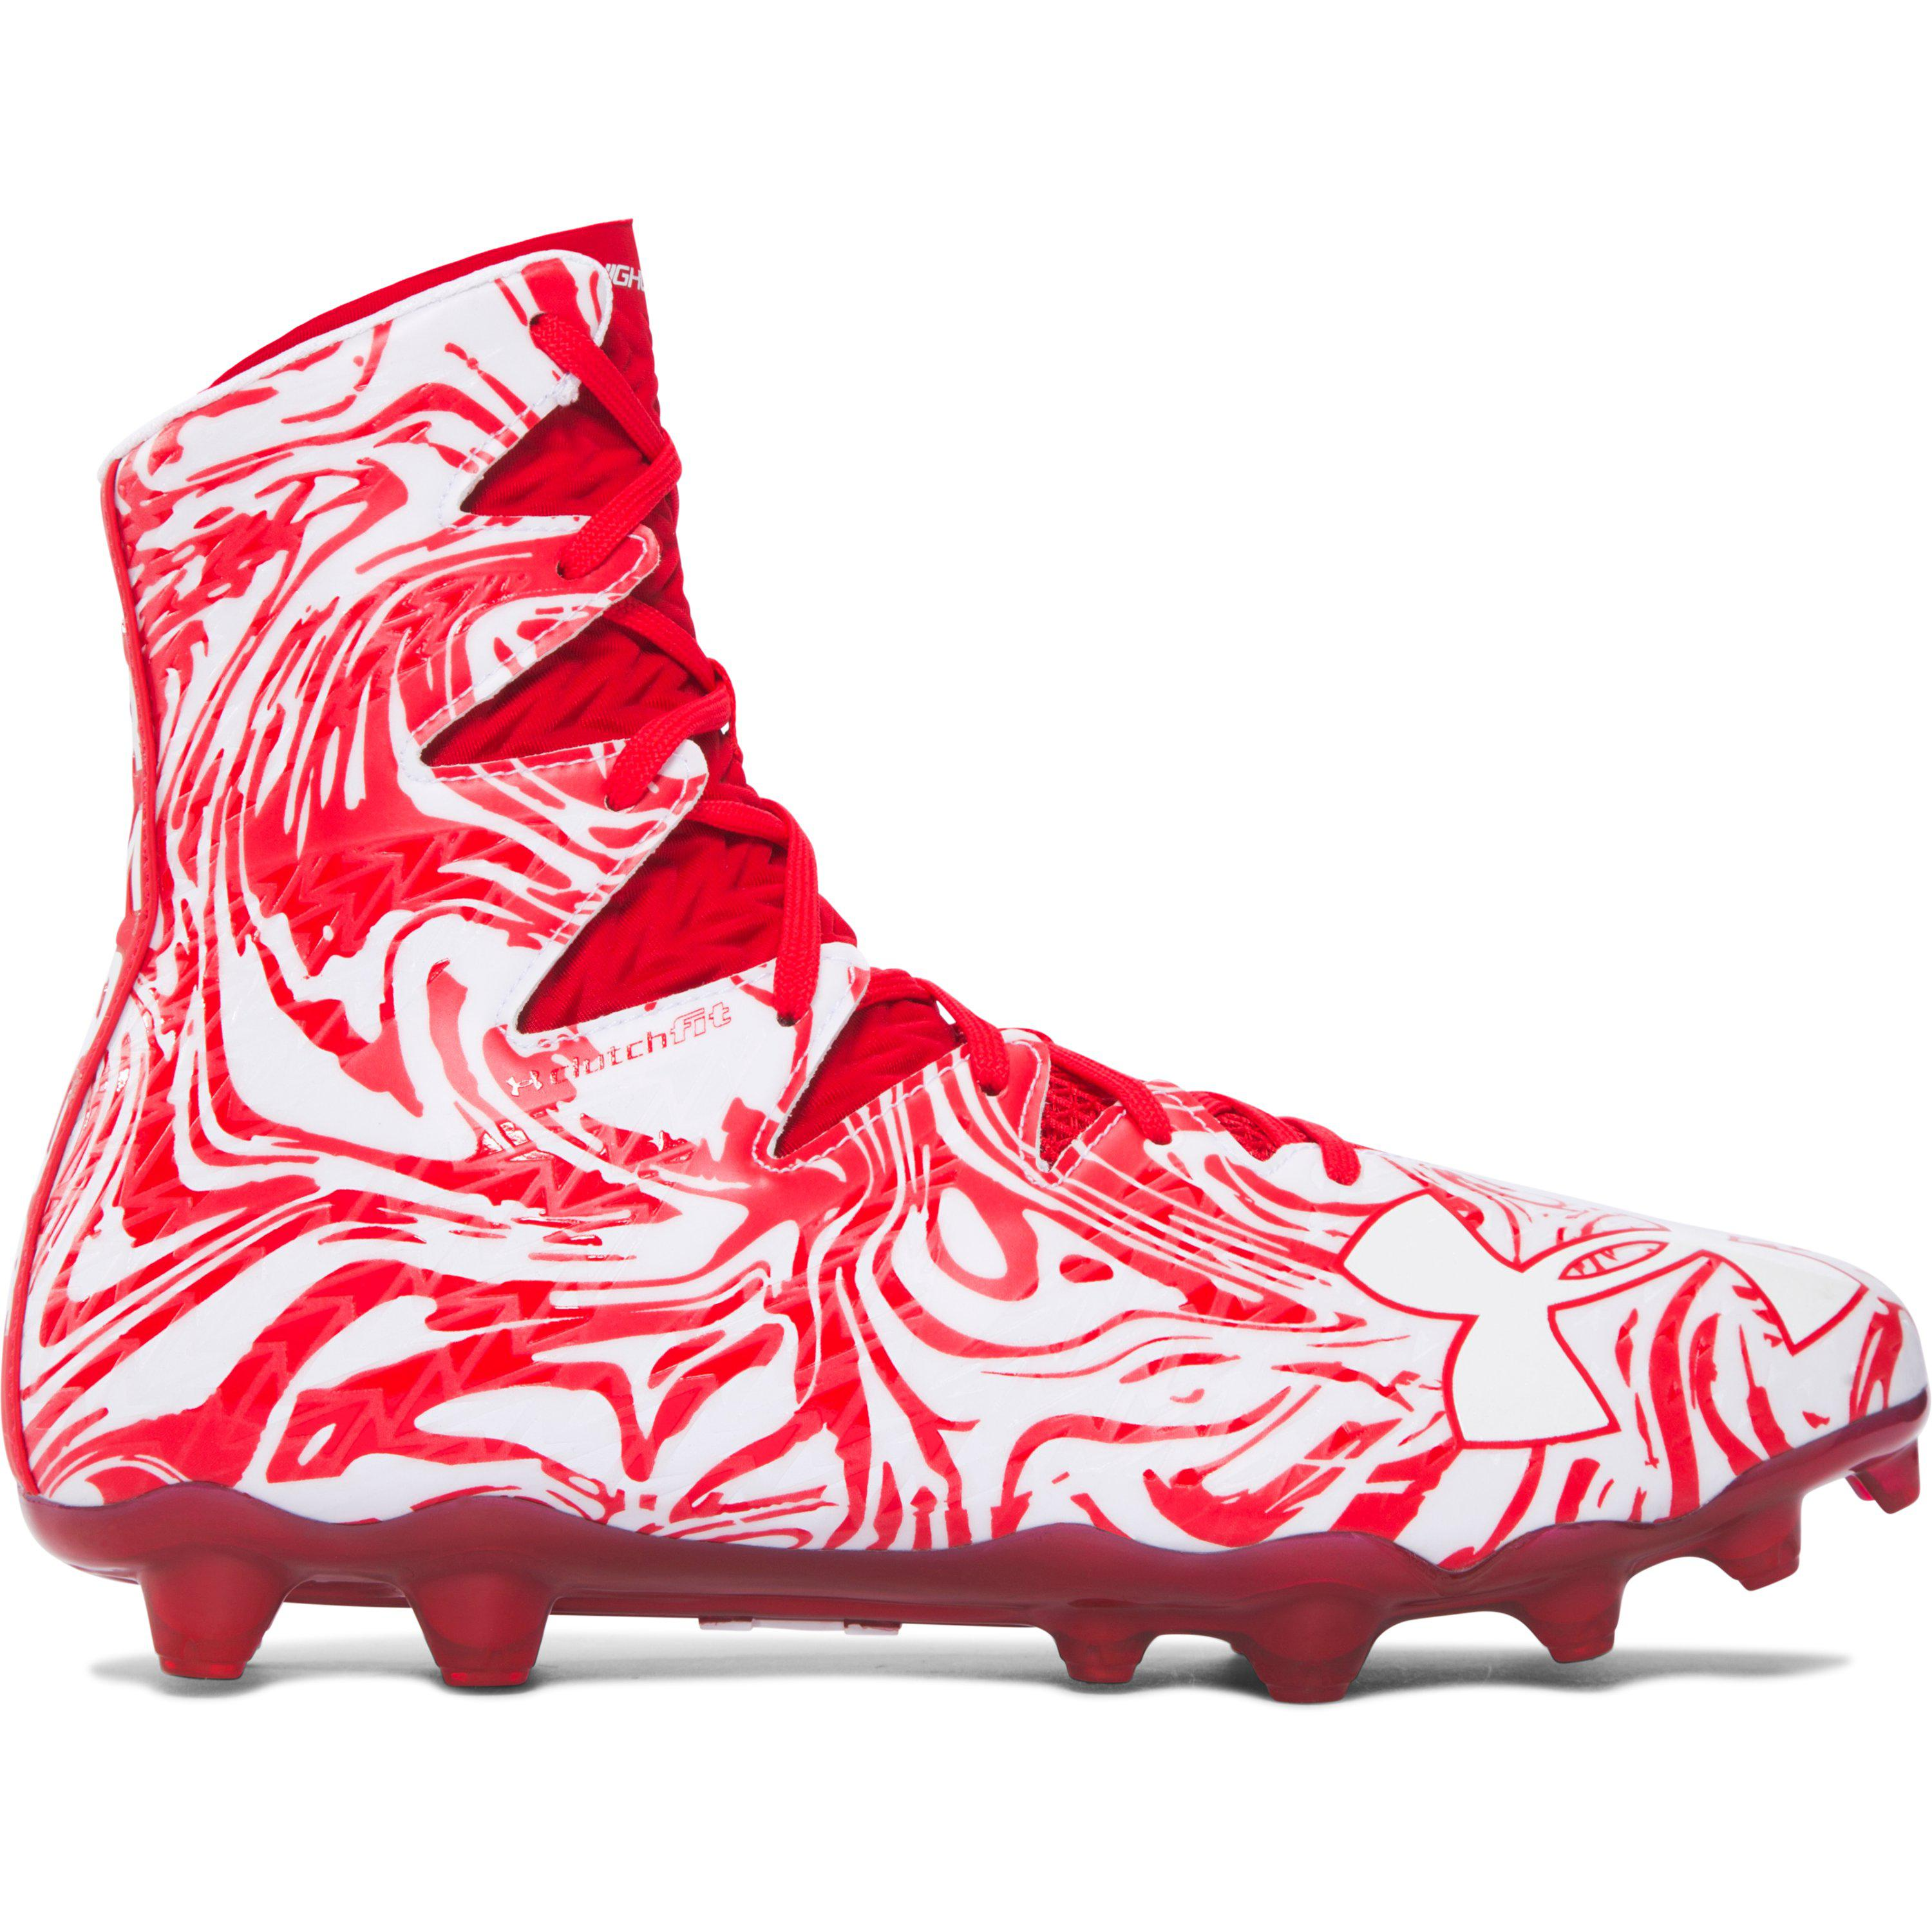 5b23c6f87 Under Armour Men s Ua Highlight Lux Mc Football Cleats in Red for ...